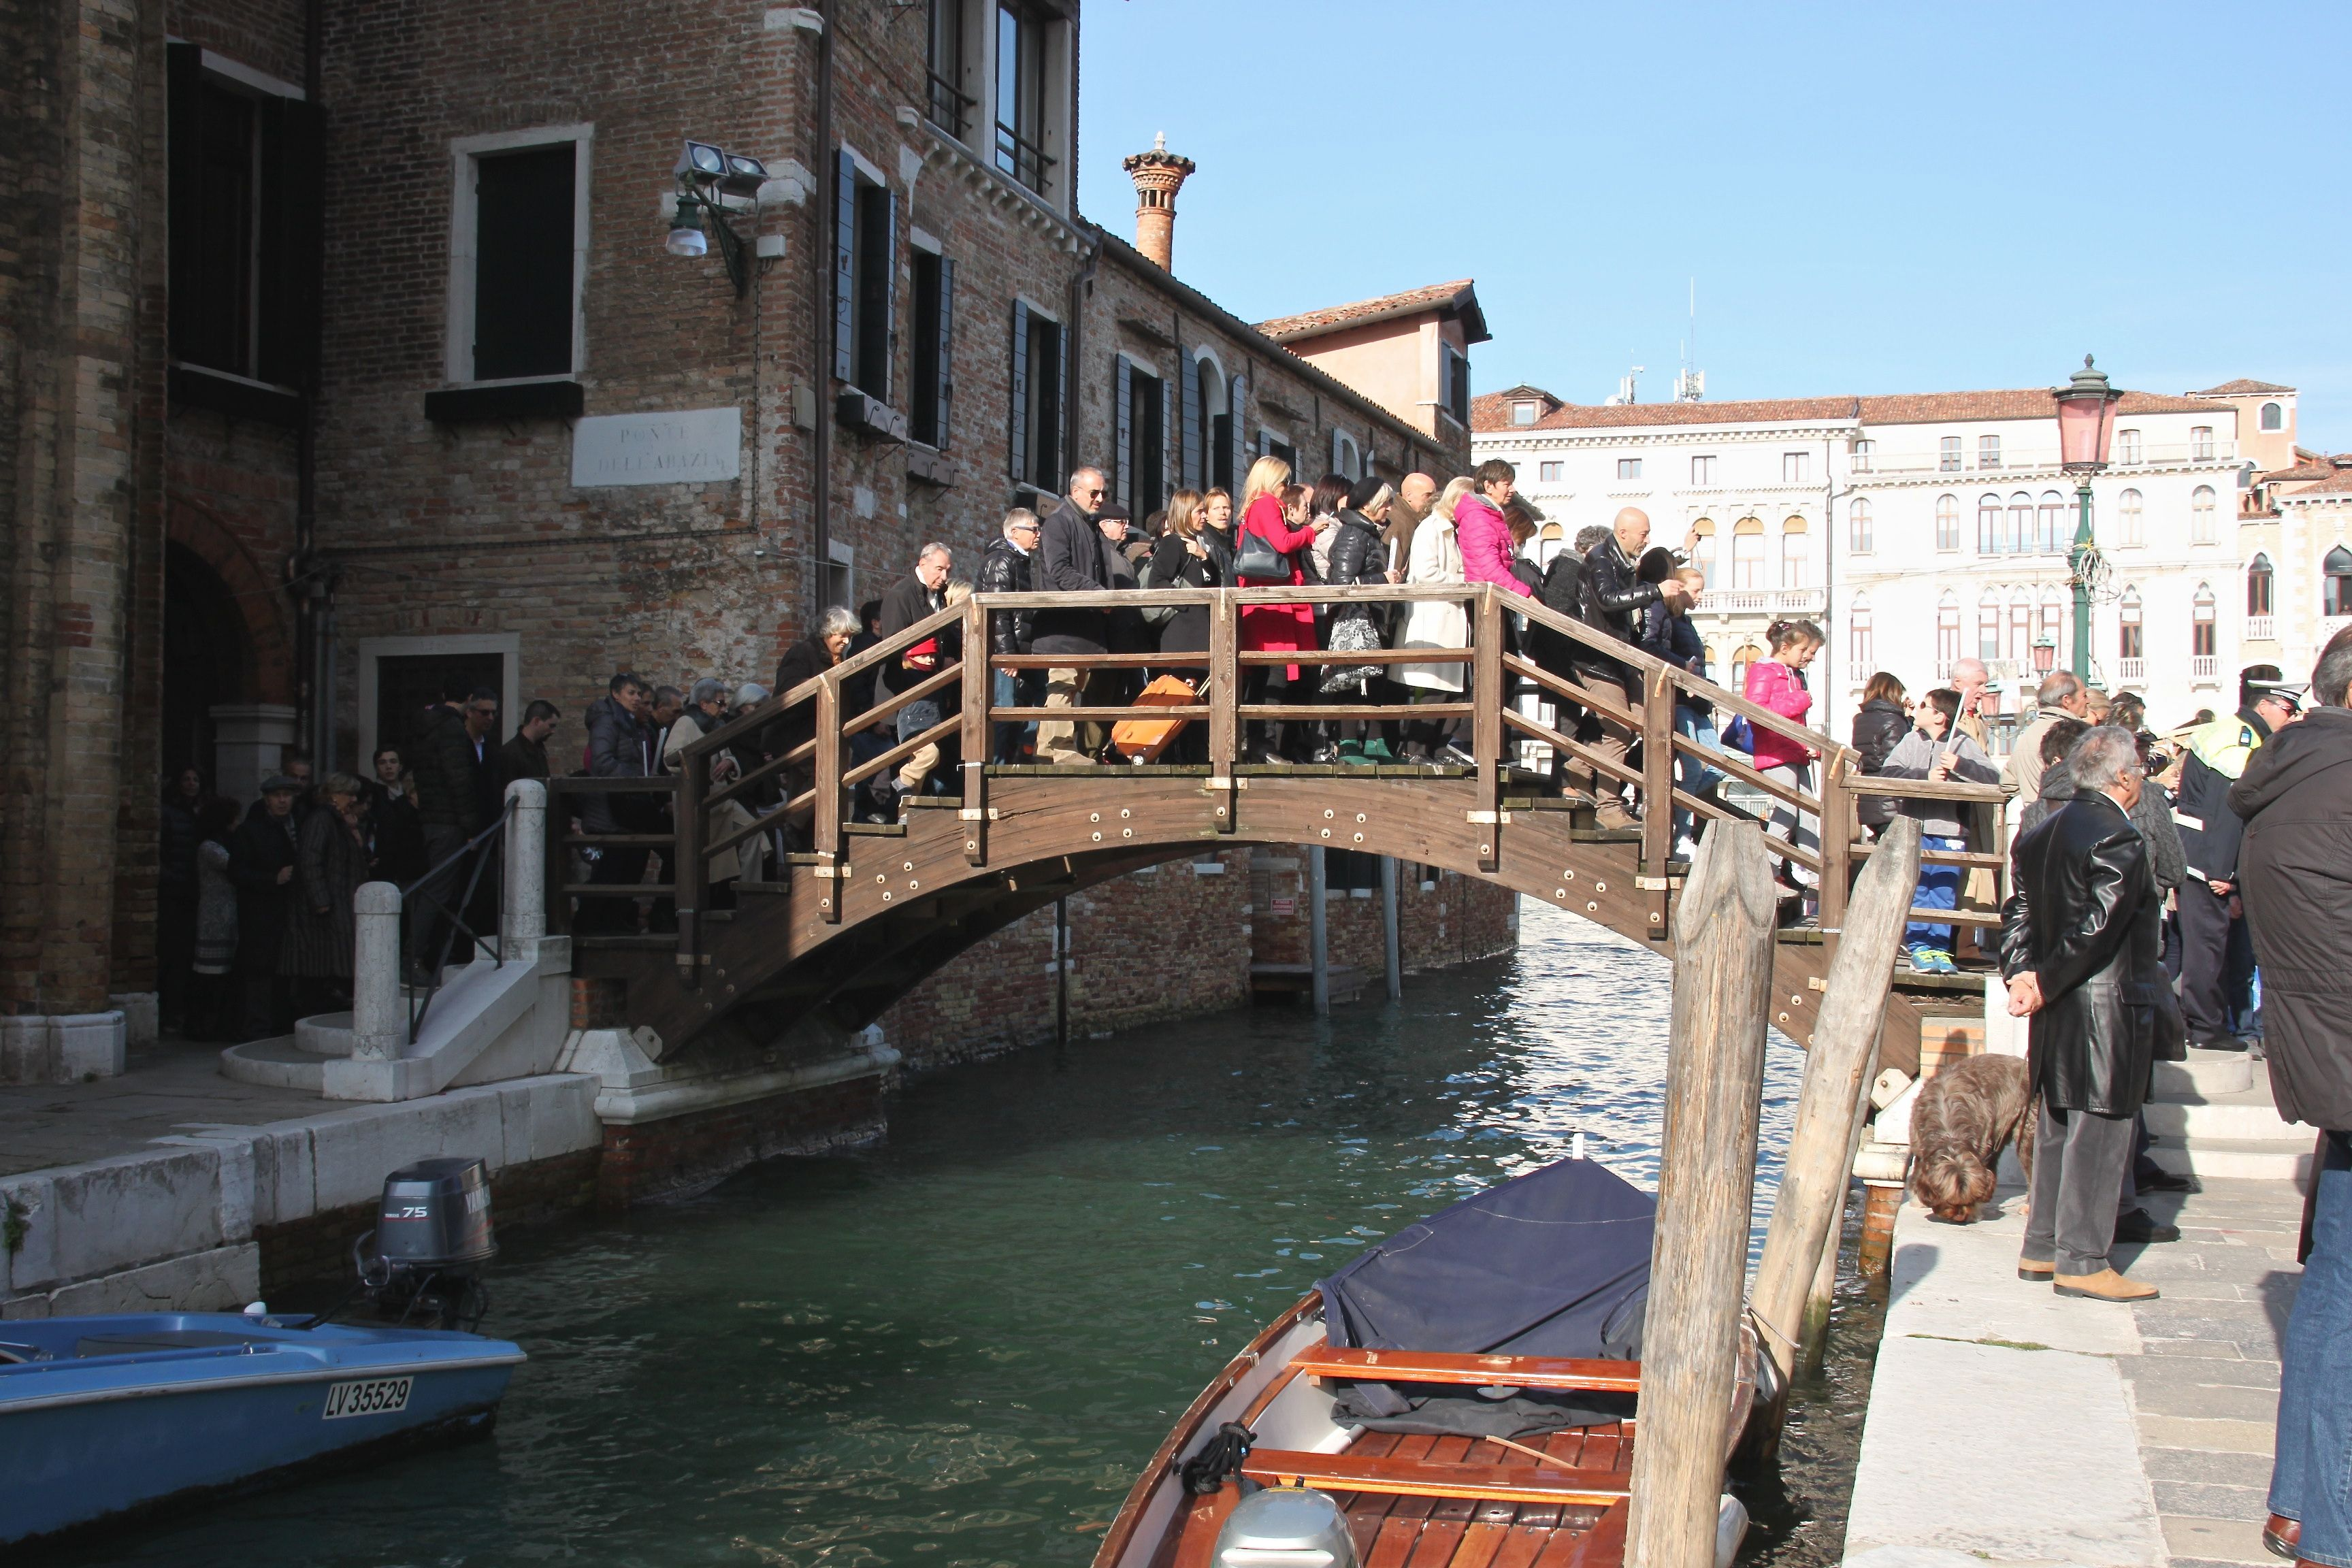 The faithful make the short pilgrimage to the Church of the Madonna della Salute on foot